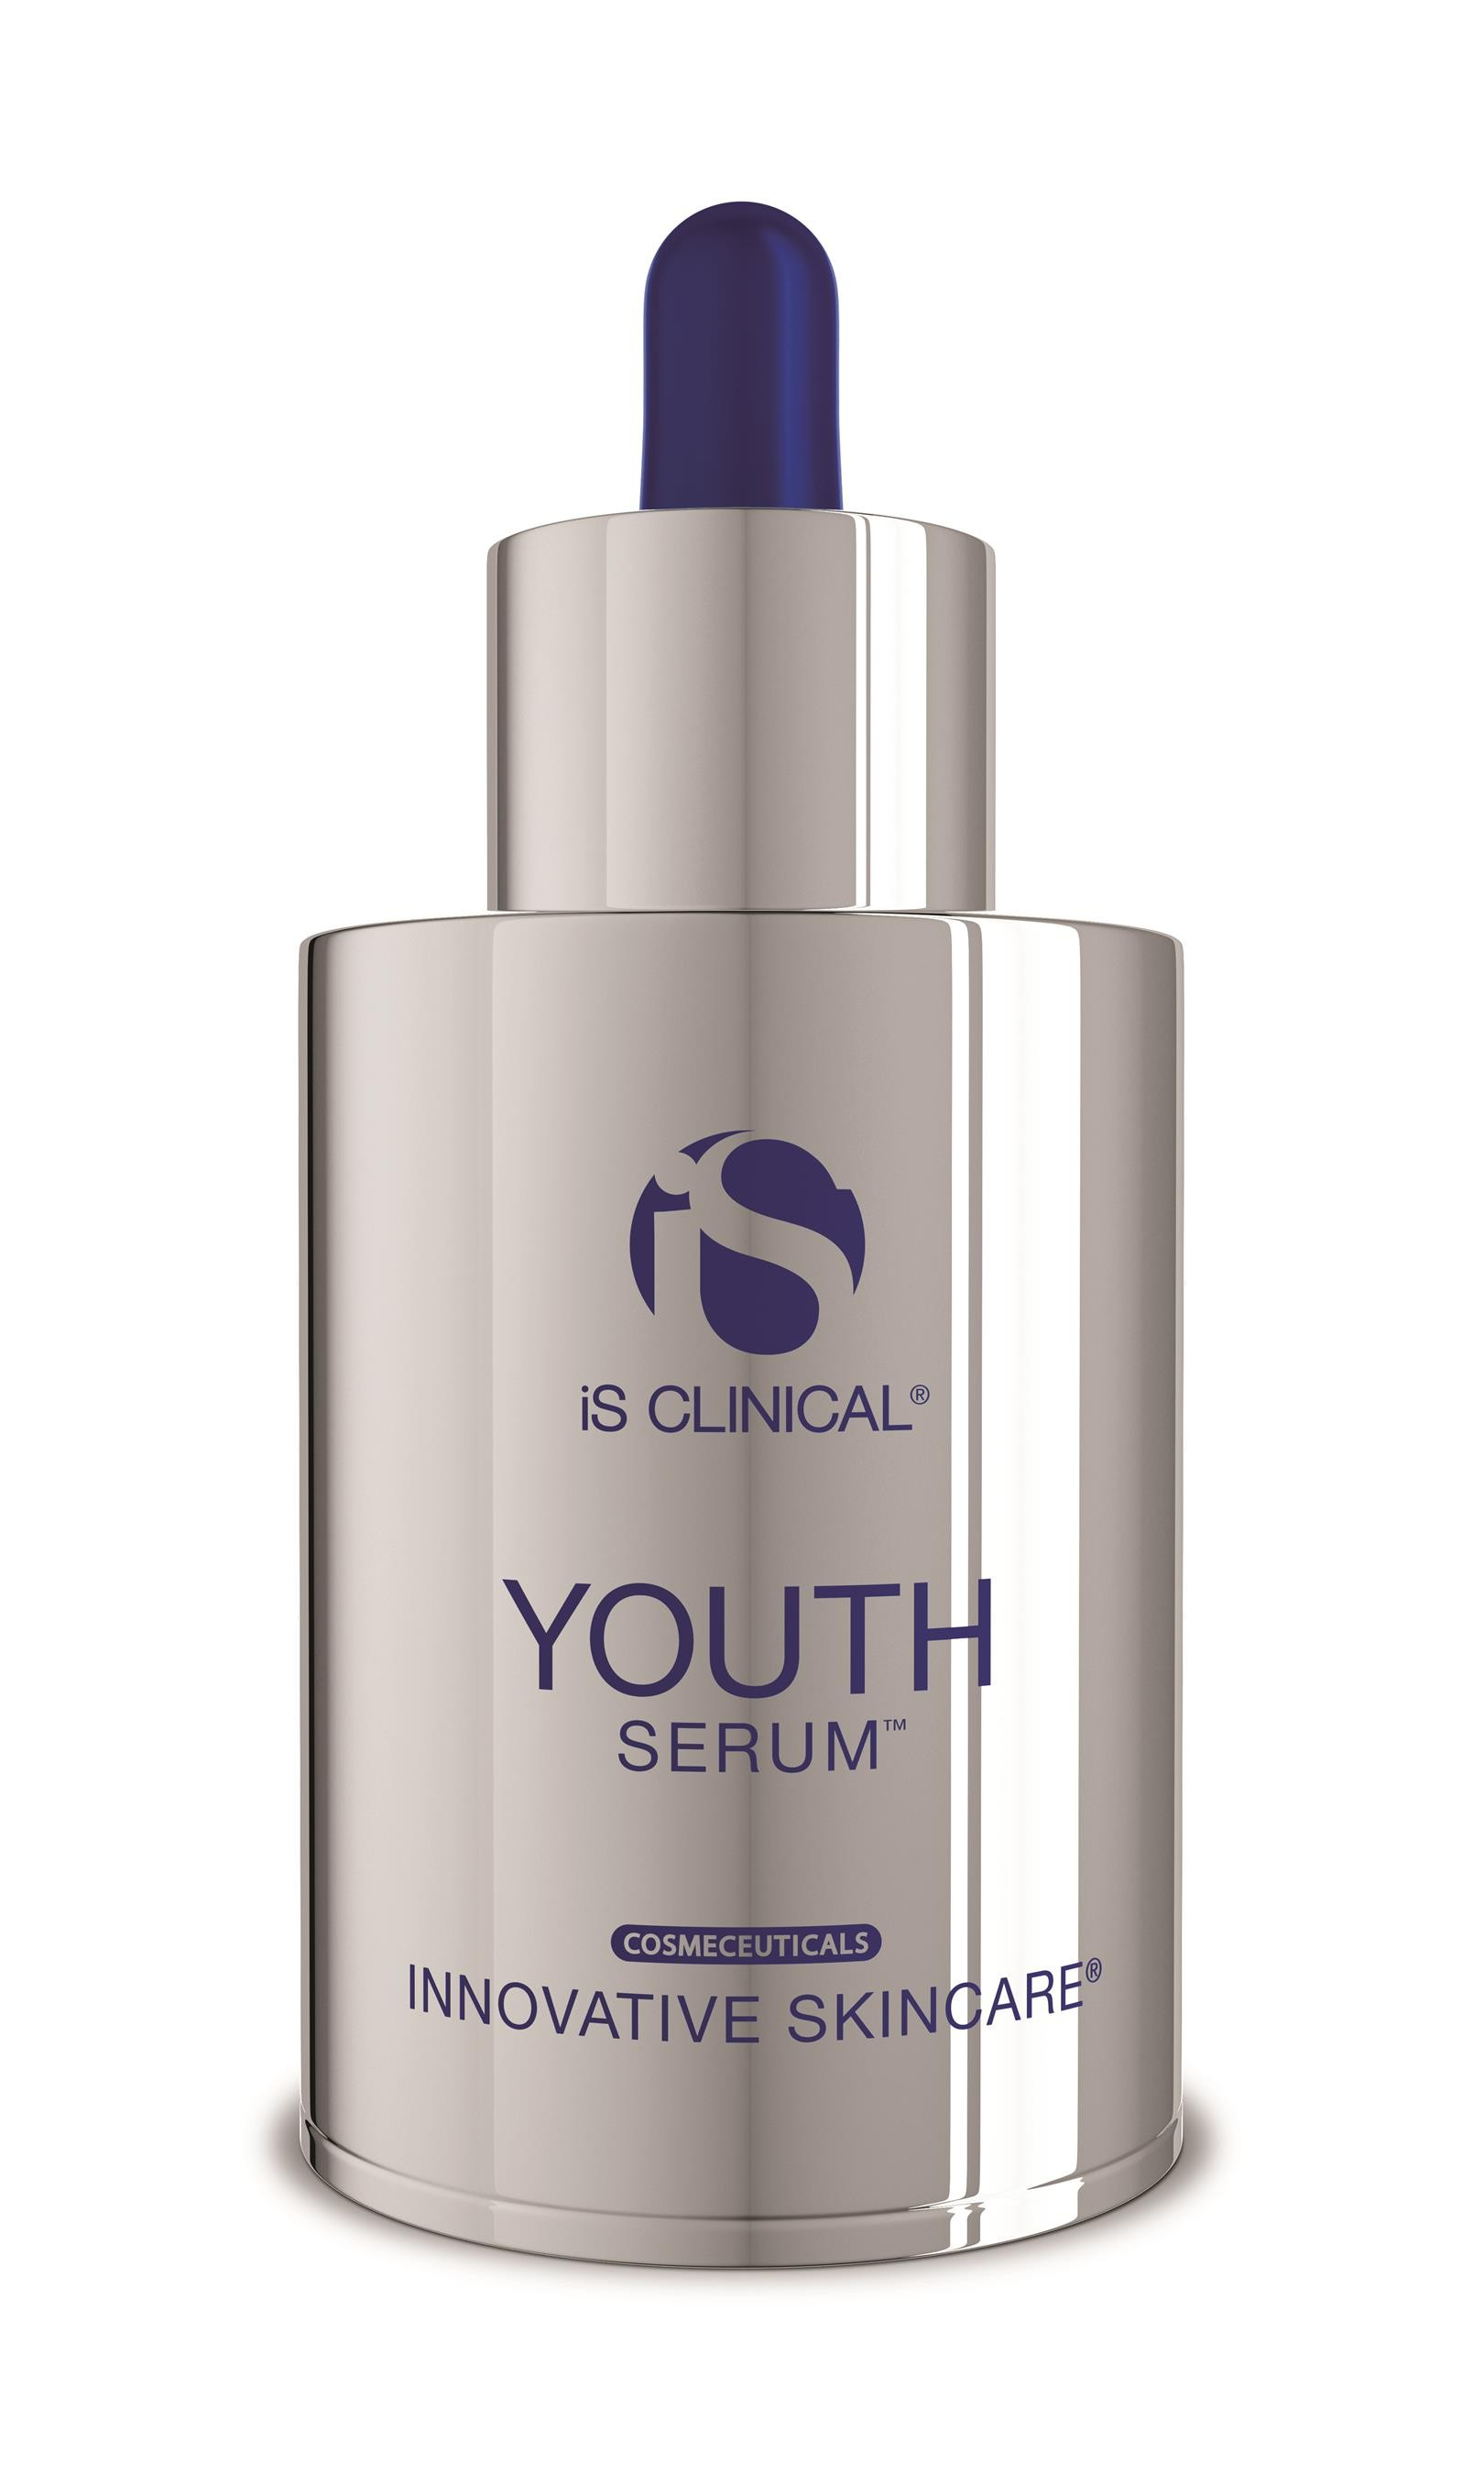 Youth Serum - IS CLINICAL